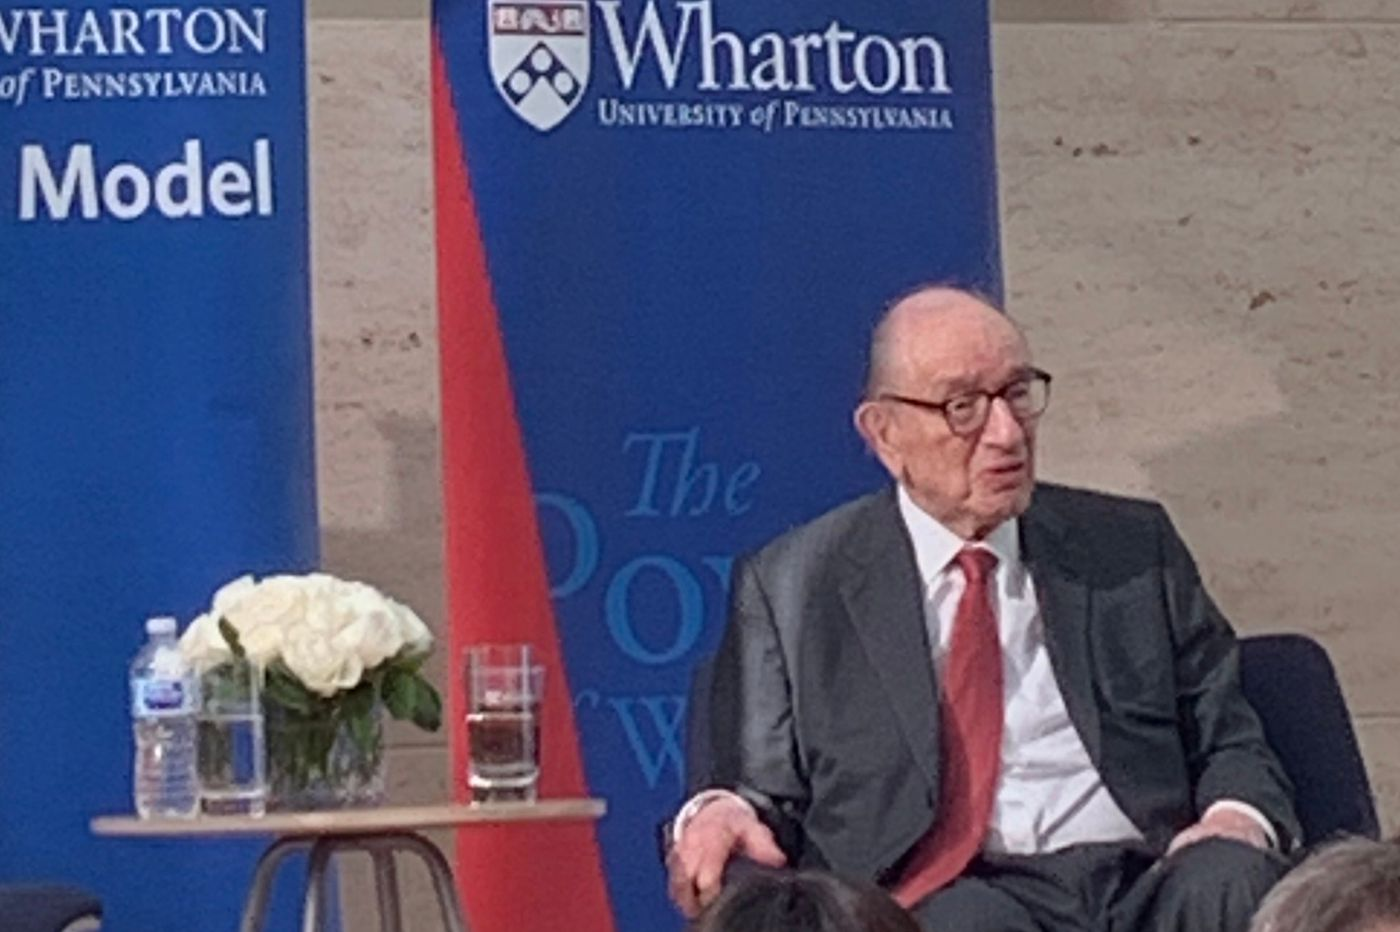 At Wharton, ex-Fed boss Alan Greenspan, 93, urges more immigration and less Social Security, and tells why China still trails